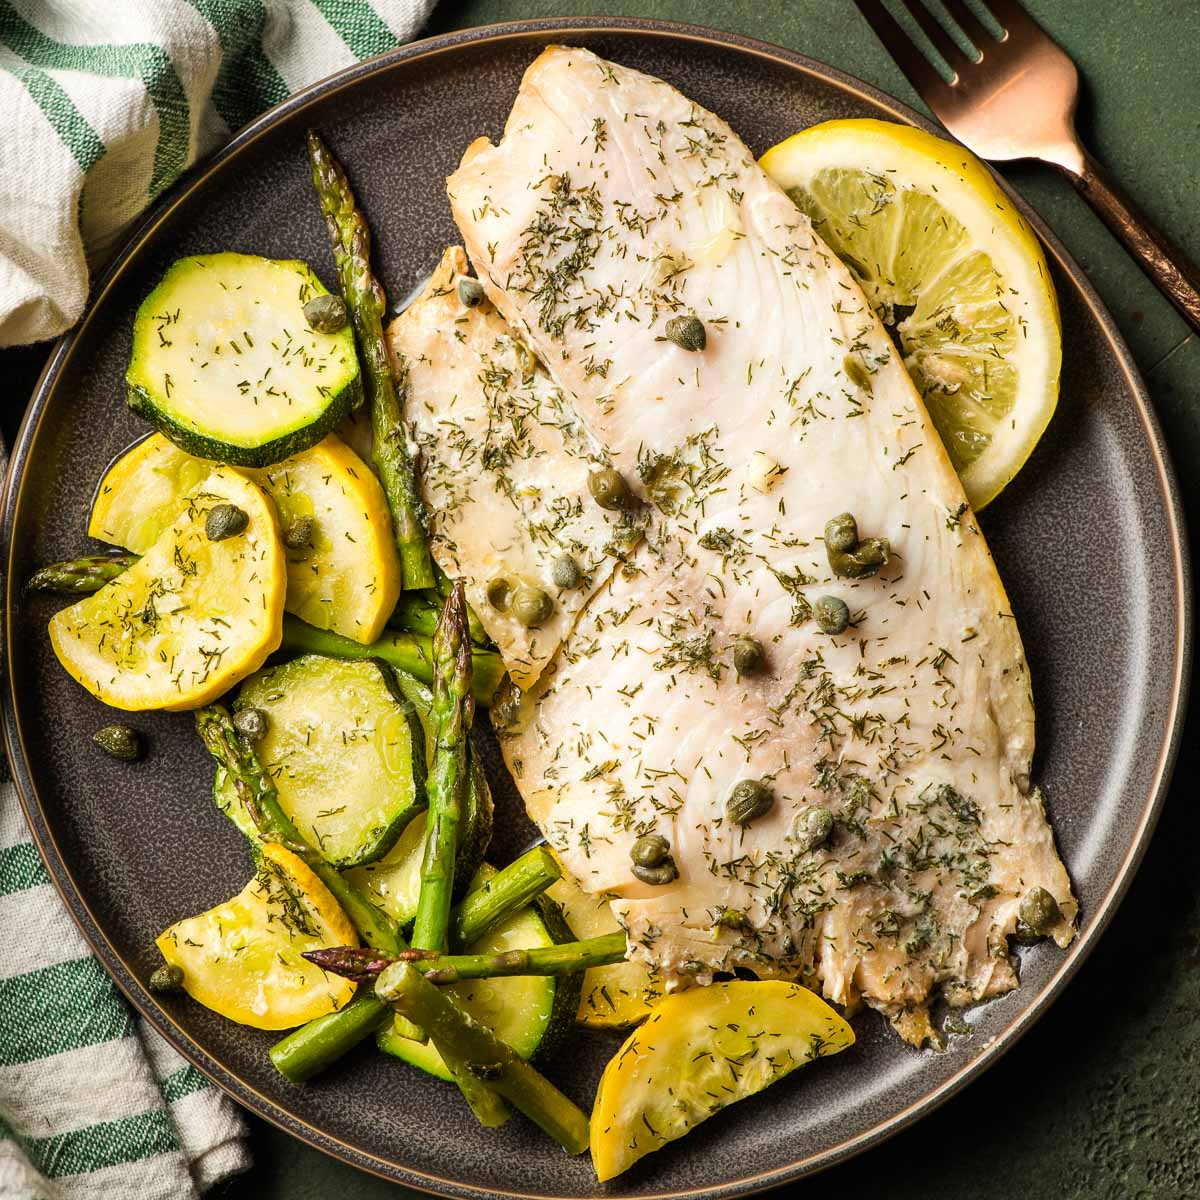 Grilled tilapia on a plate with sliced squash, zucchini, and asparagus.